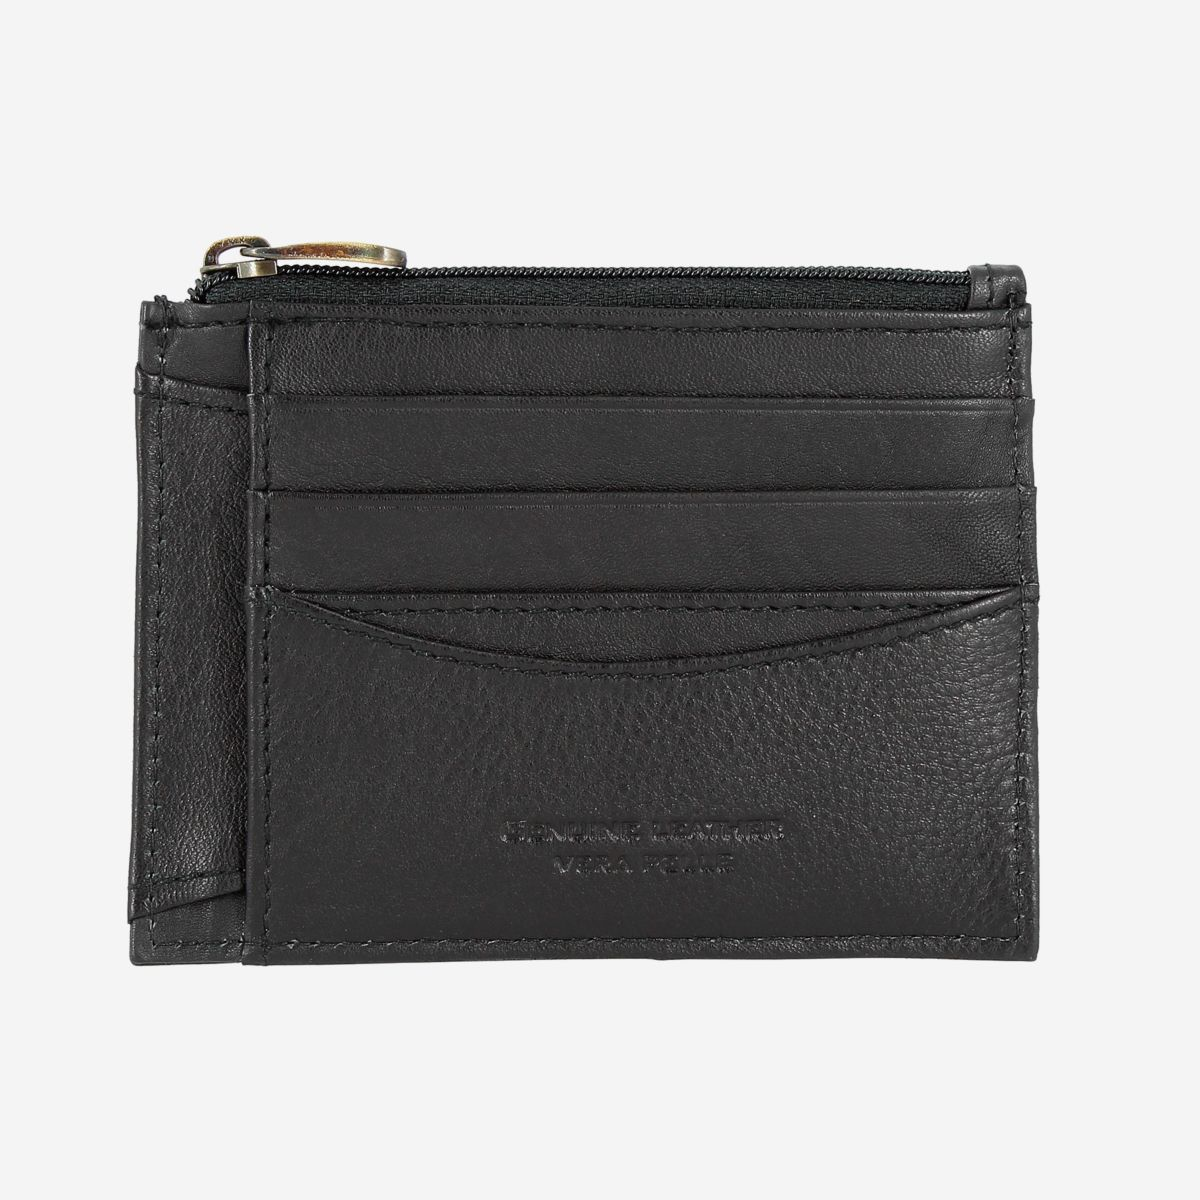 NUVOLA PELLE Slim Leather Credit Card Wallet - Black